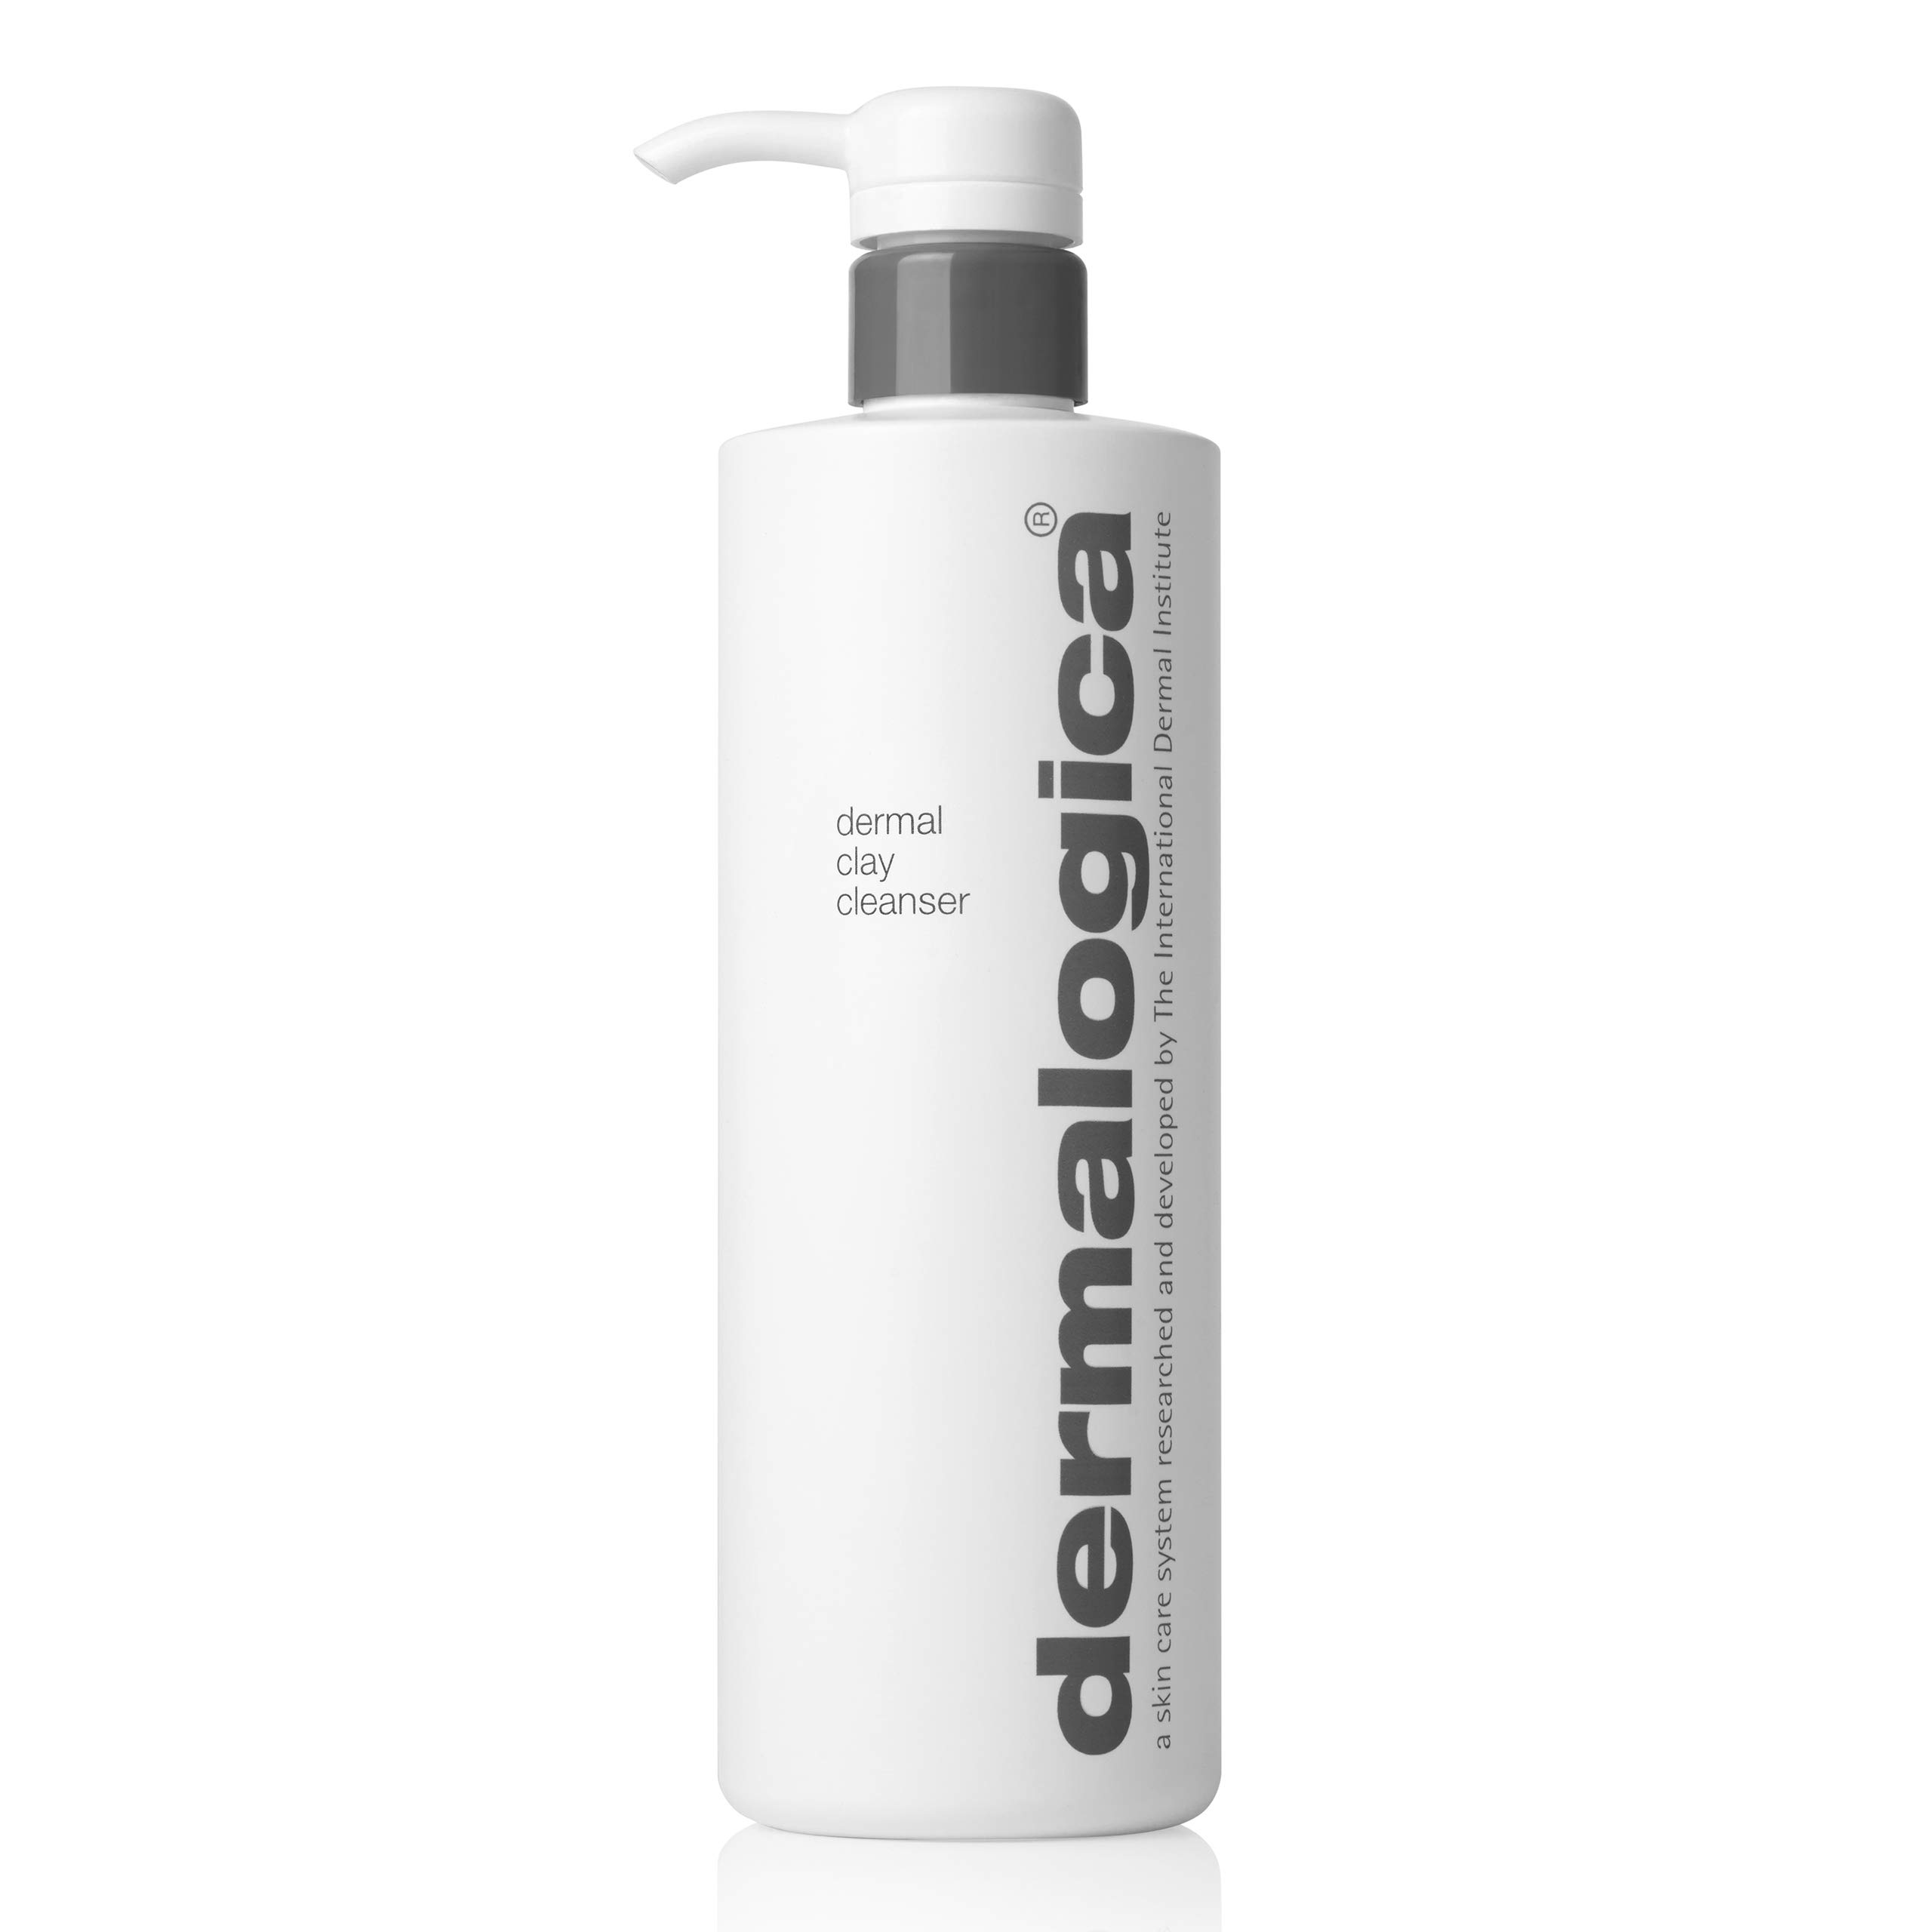 Dermalogica Dermal Clay Cleanser, 16.9 Fl Oz